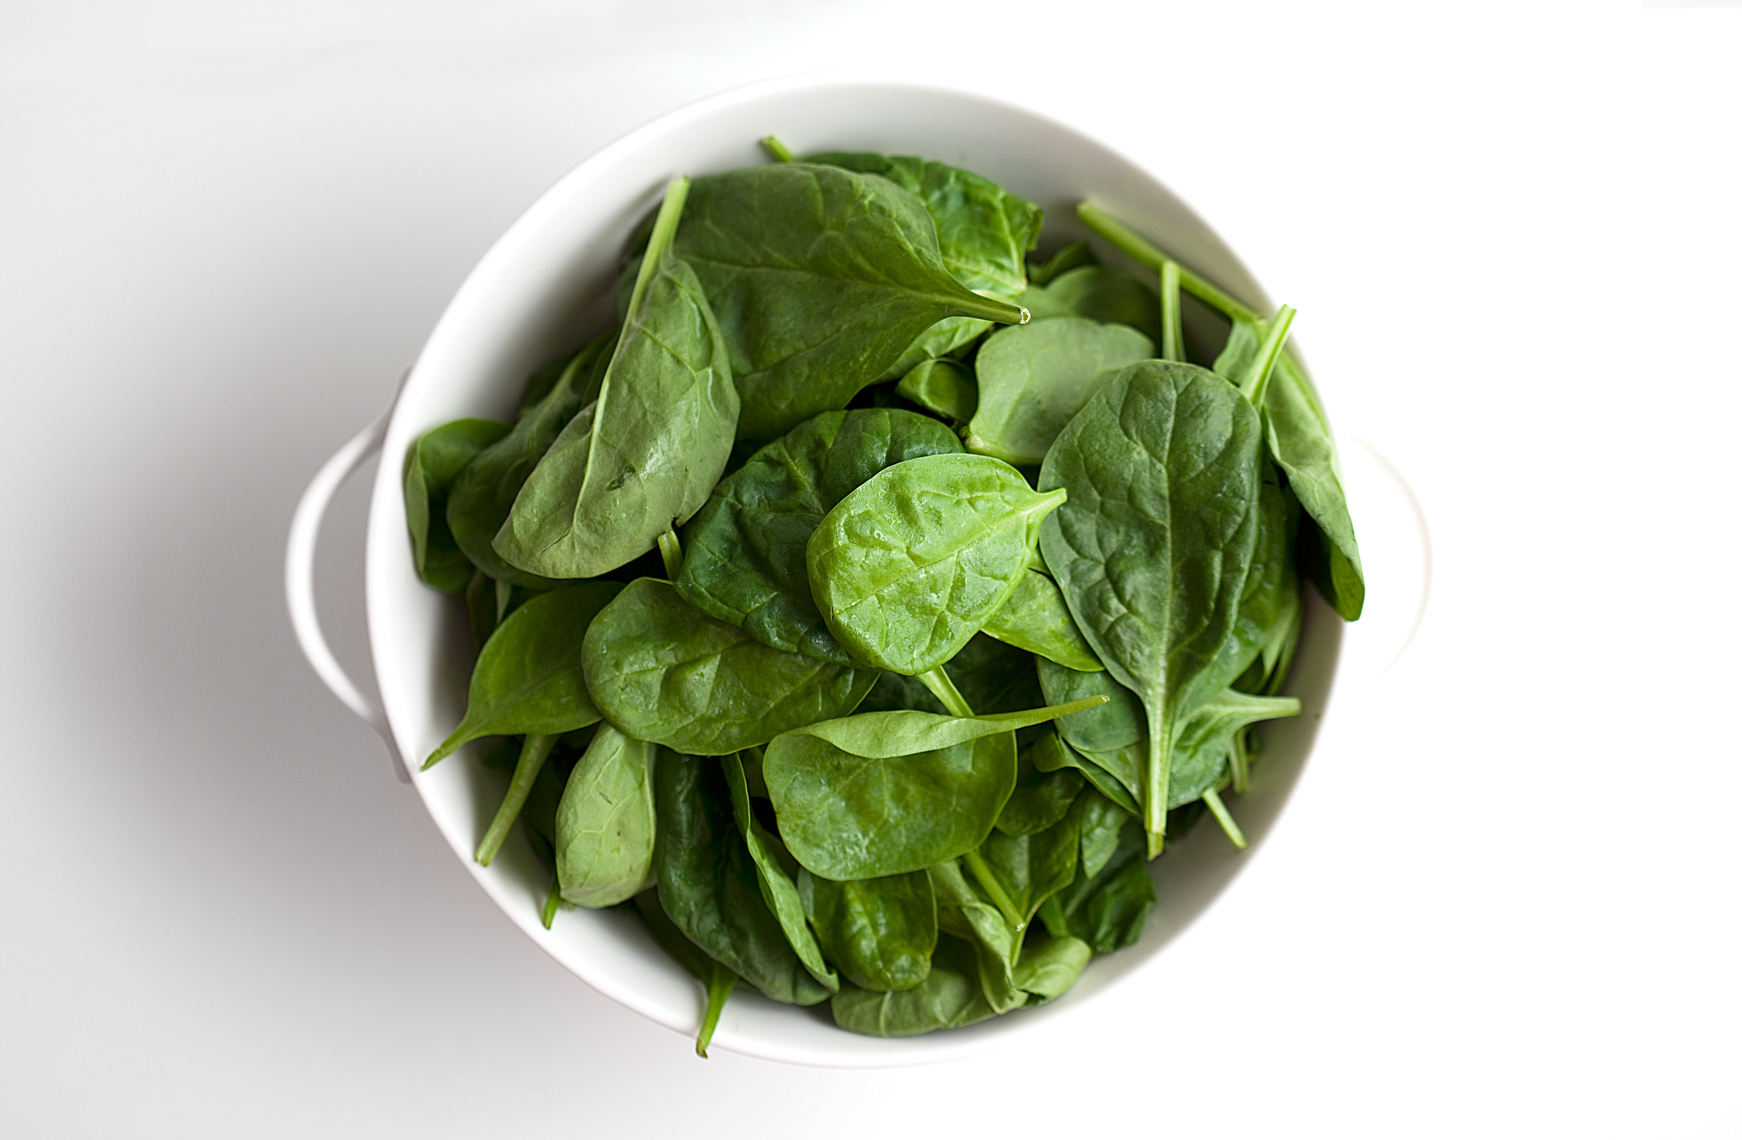 Spinach in a white bowl, white background, silhouette, still life, Nashville food photographer